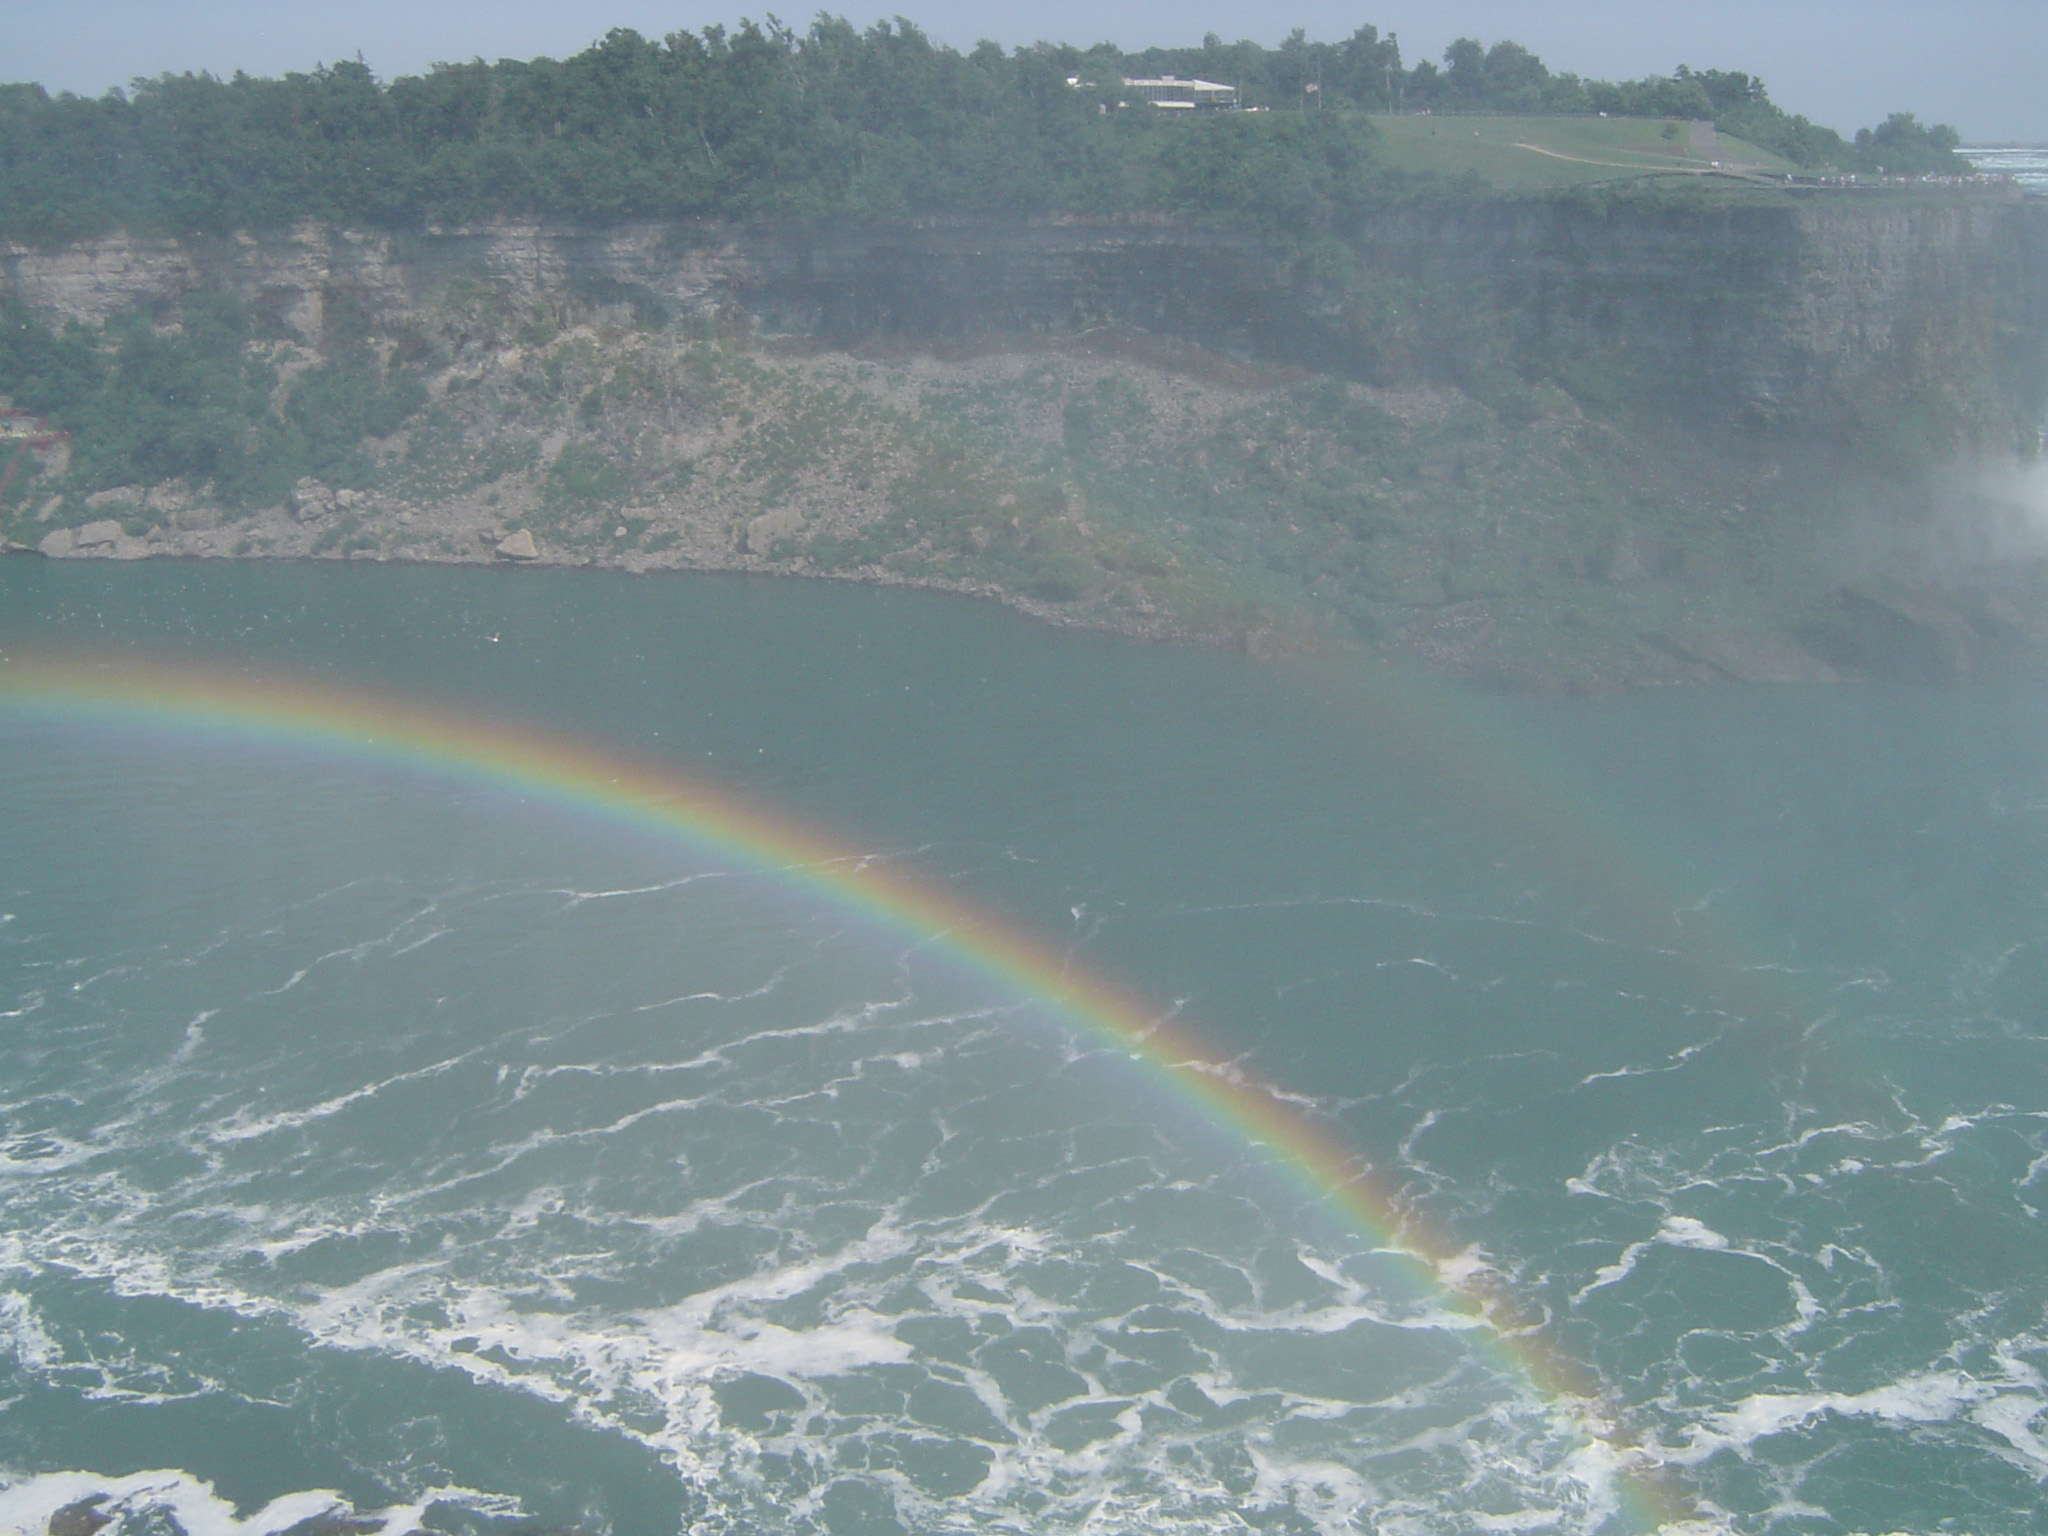 Overview of Rainbow in Mist at Niagara Falls